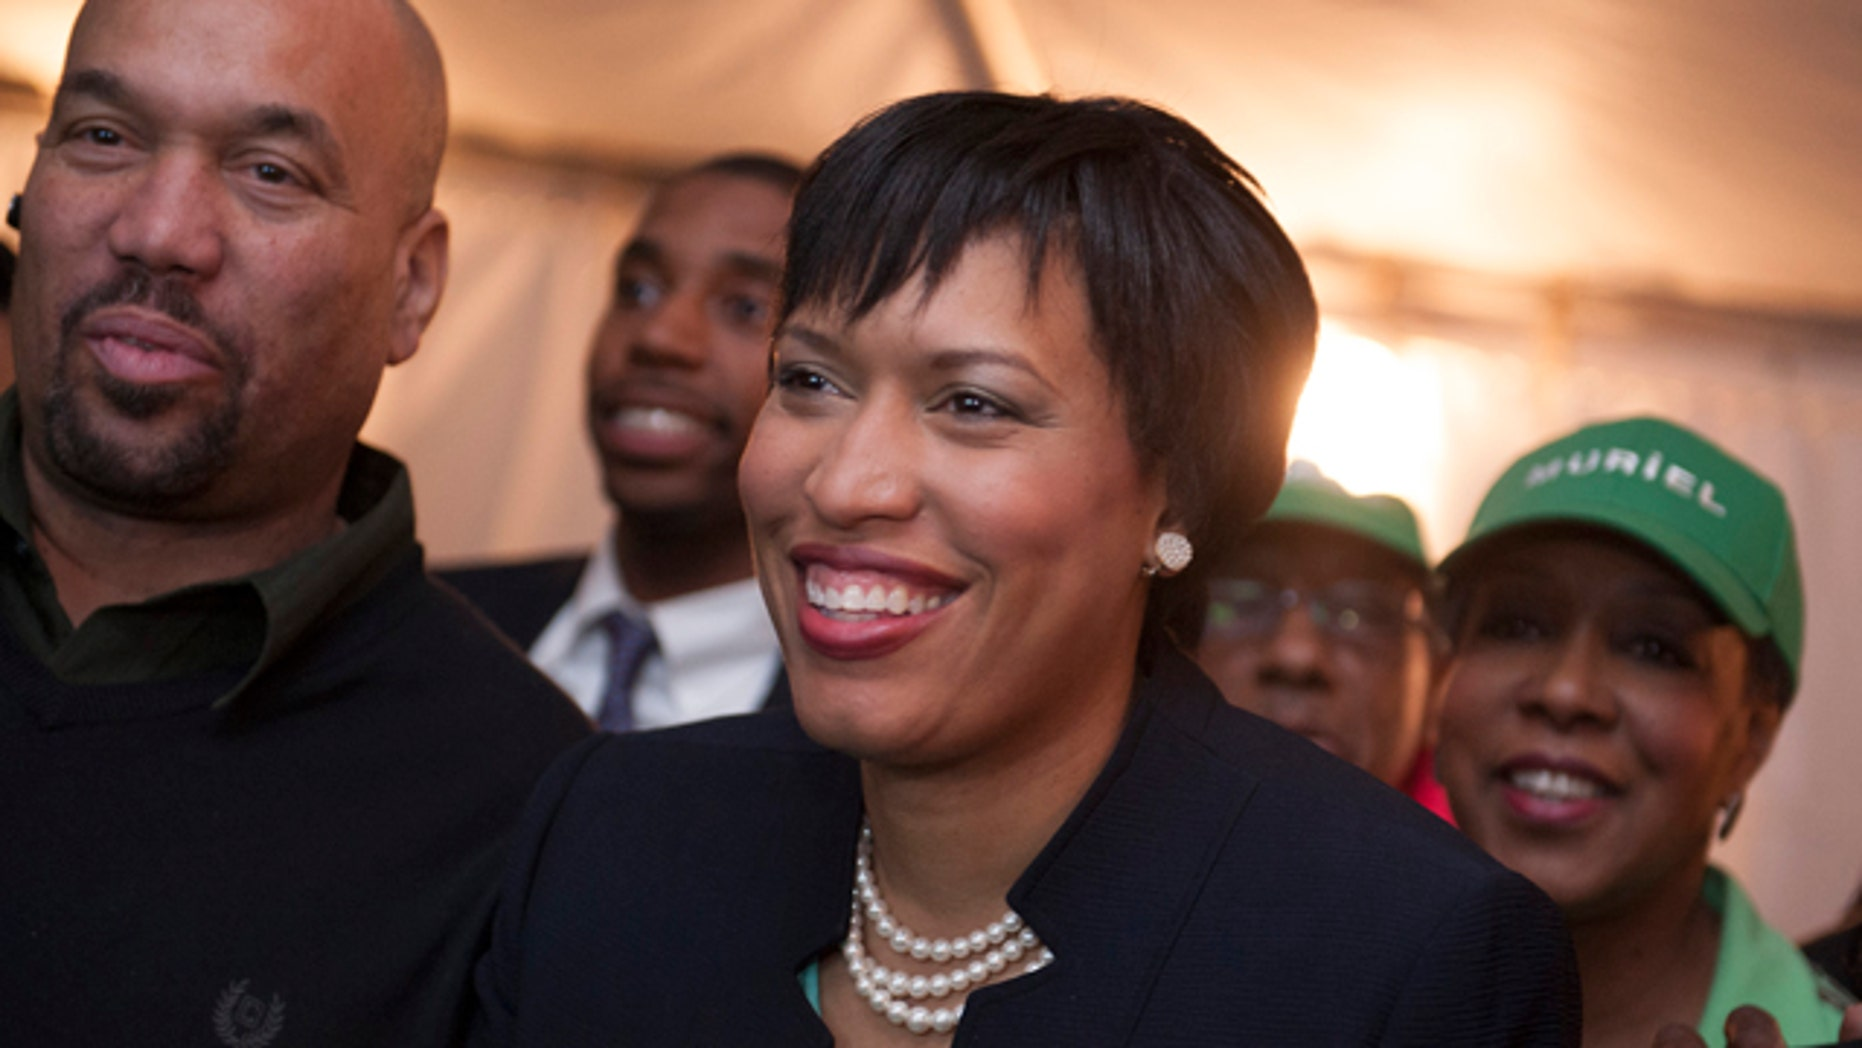 Democrat Muriel Bowser elected District of Columbia mayor | Fox News